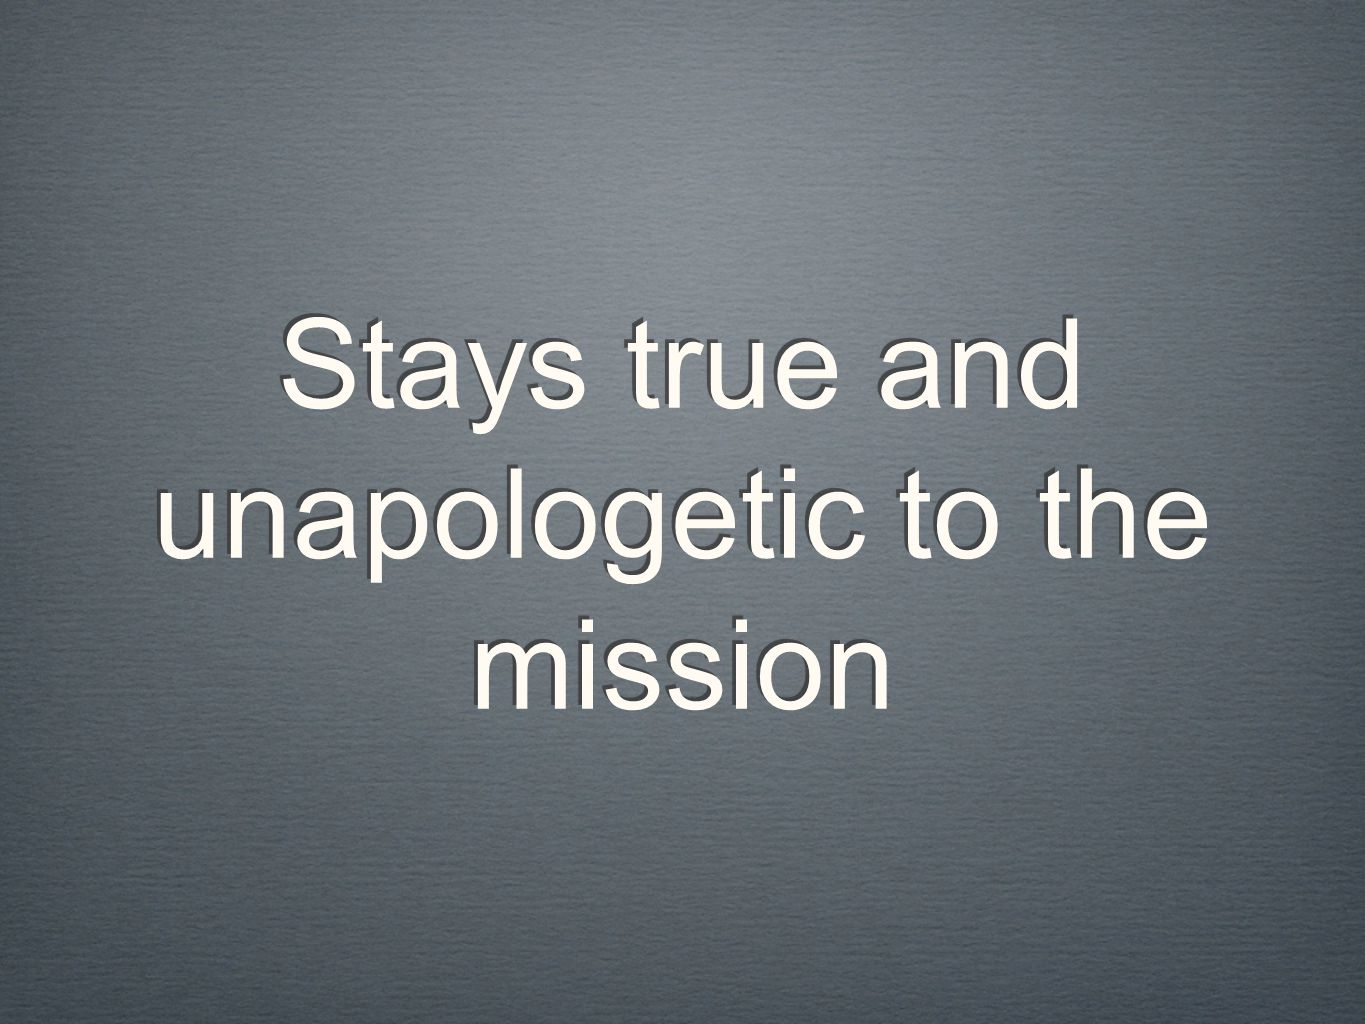 Stays true and unapologetic to the mission